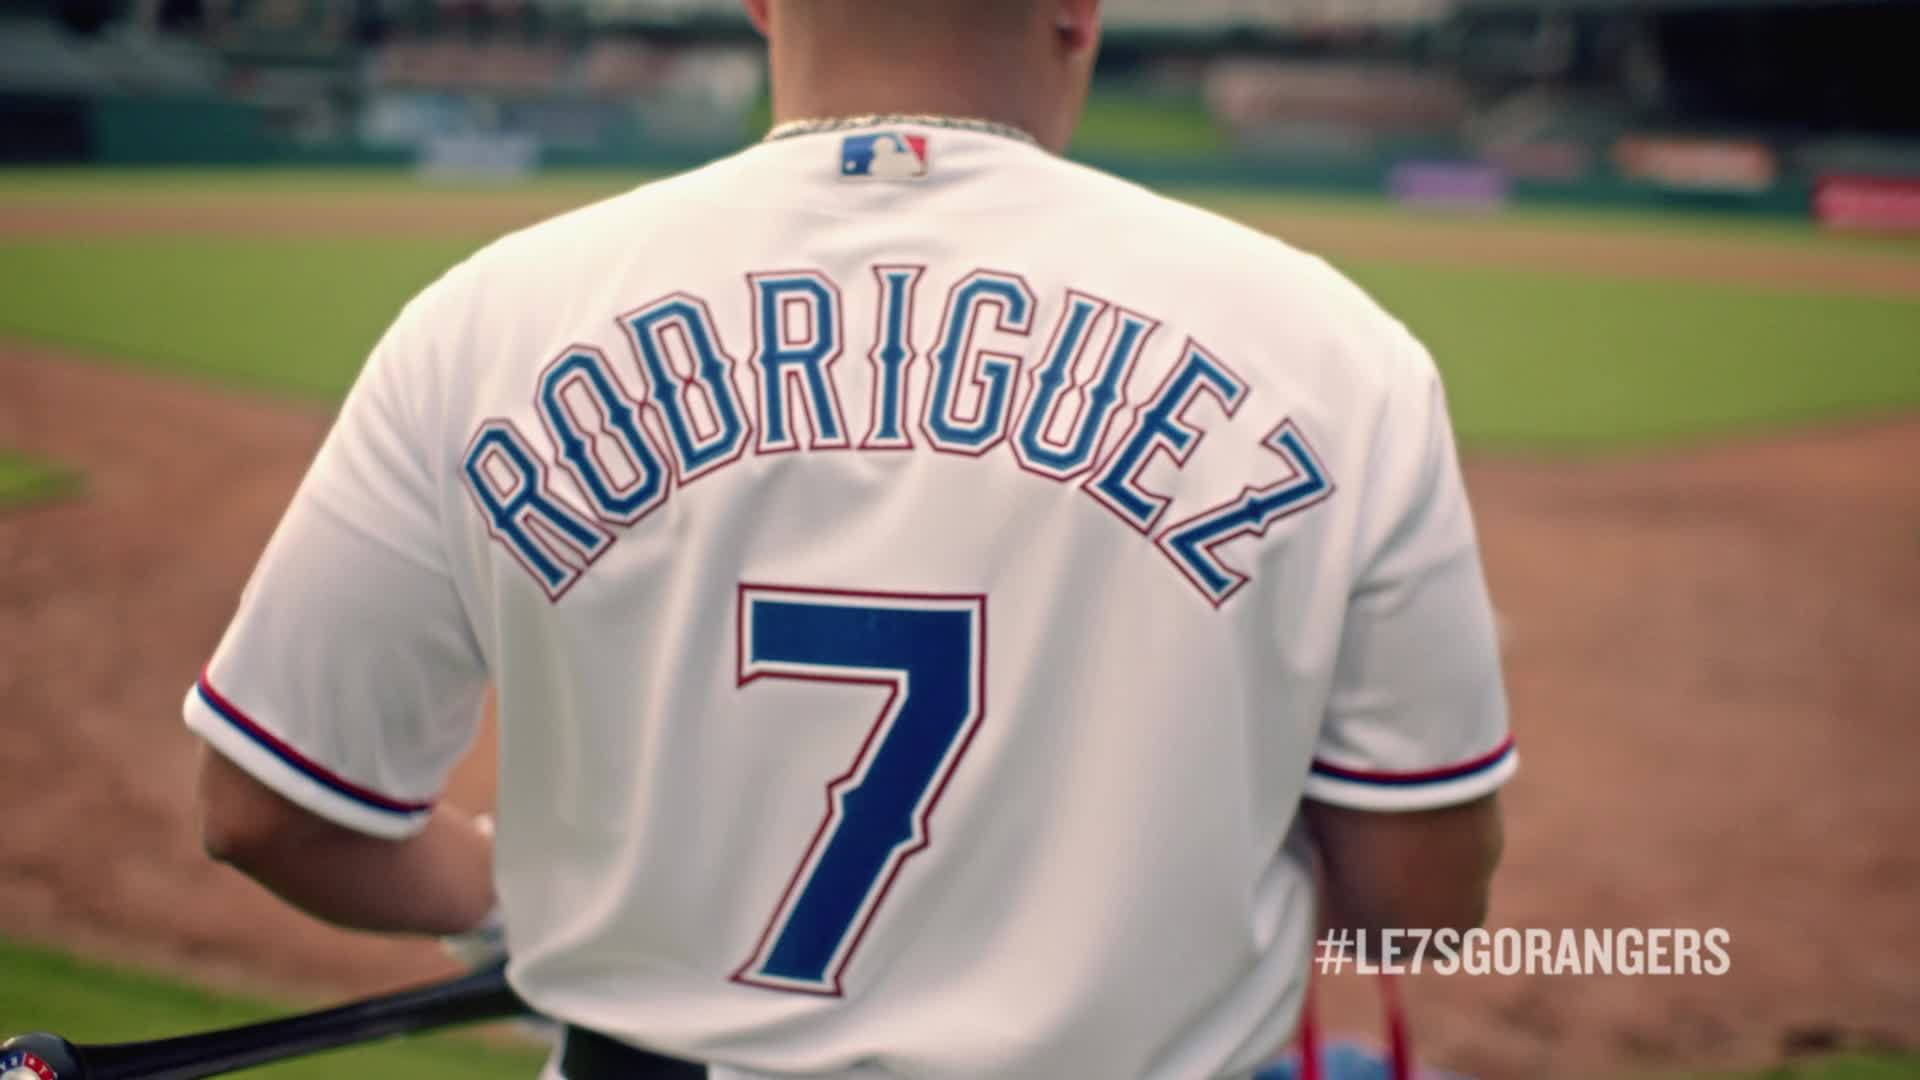 """Papa John's teams up with retired Rangers' #7, """"Pudge"""" Rodriguez, for LE7SGORANGERS pizza deal"""